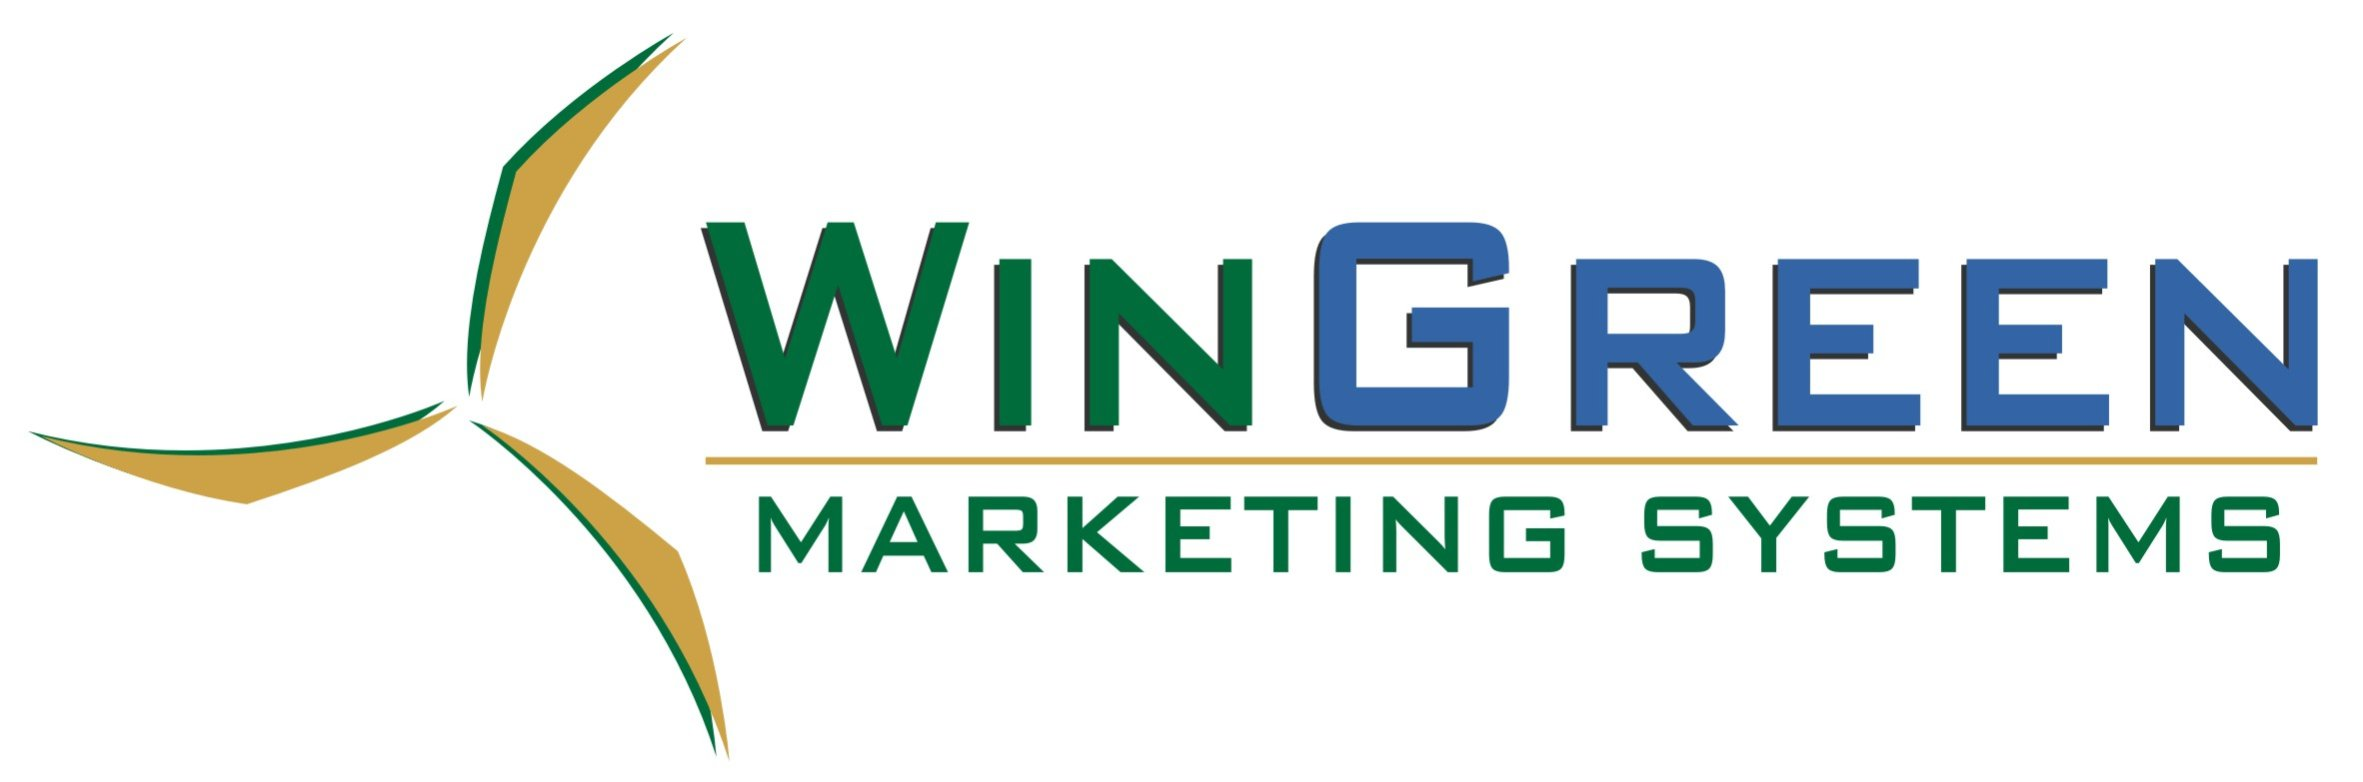 WinGreen Marketing Systems Launches Channel Advisory Service Practice